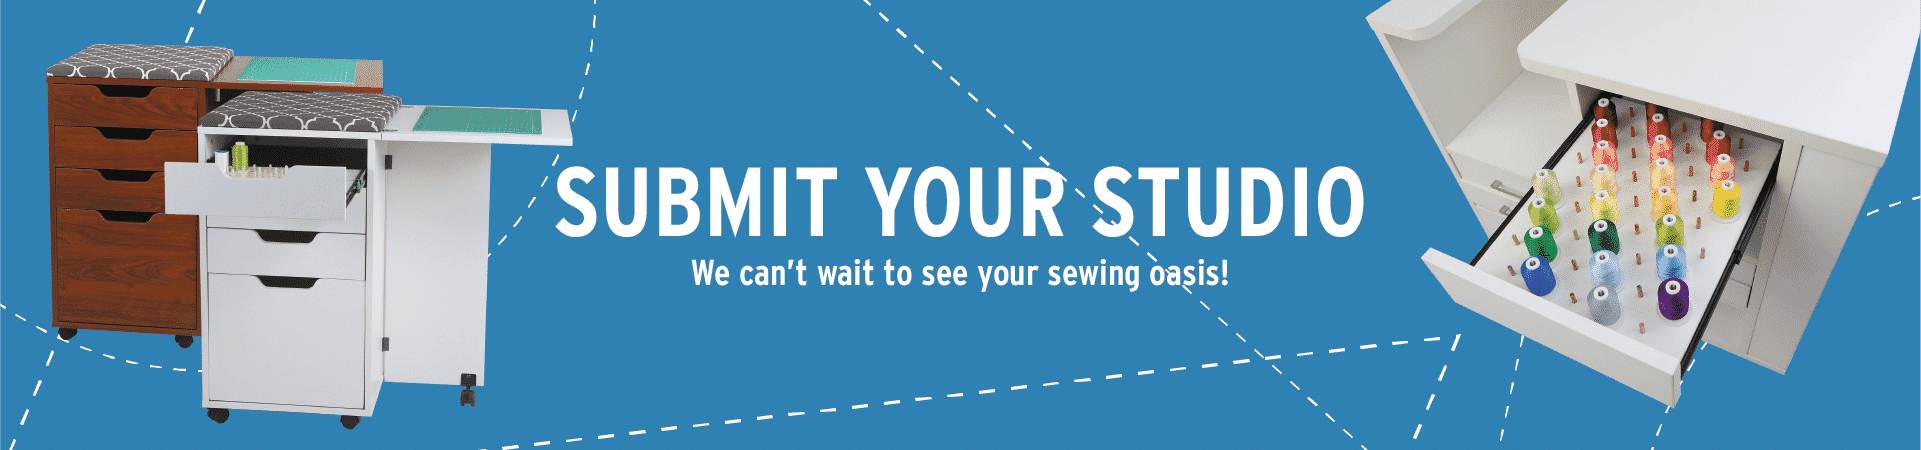 Upload an image of your sewing studio